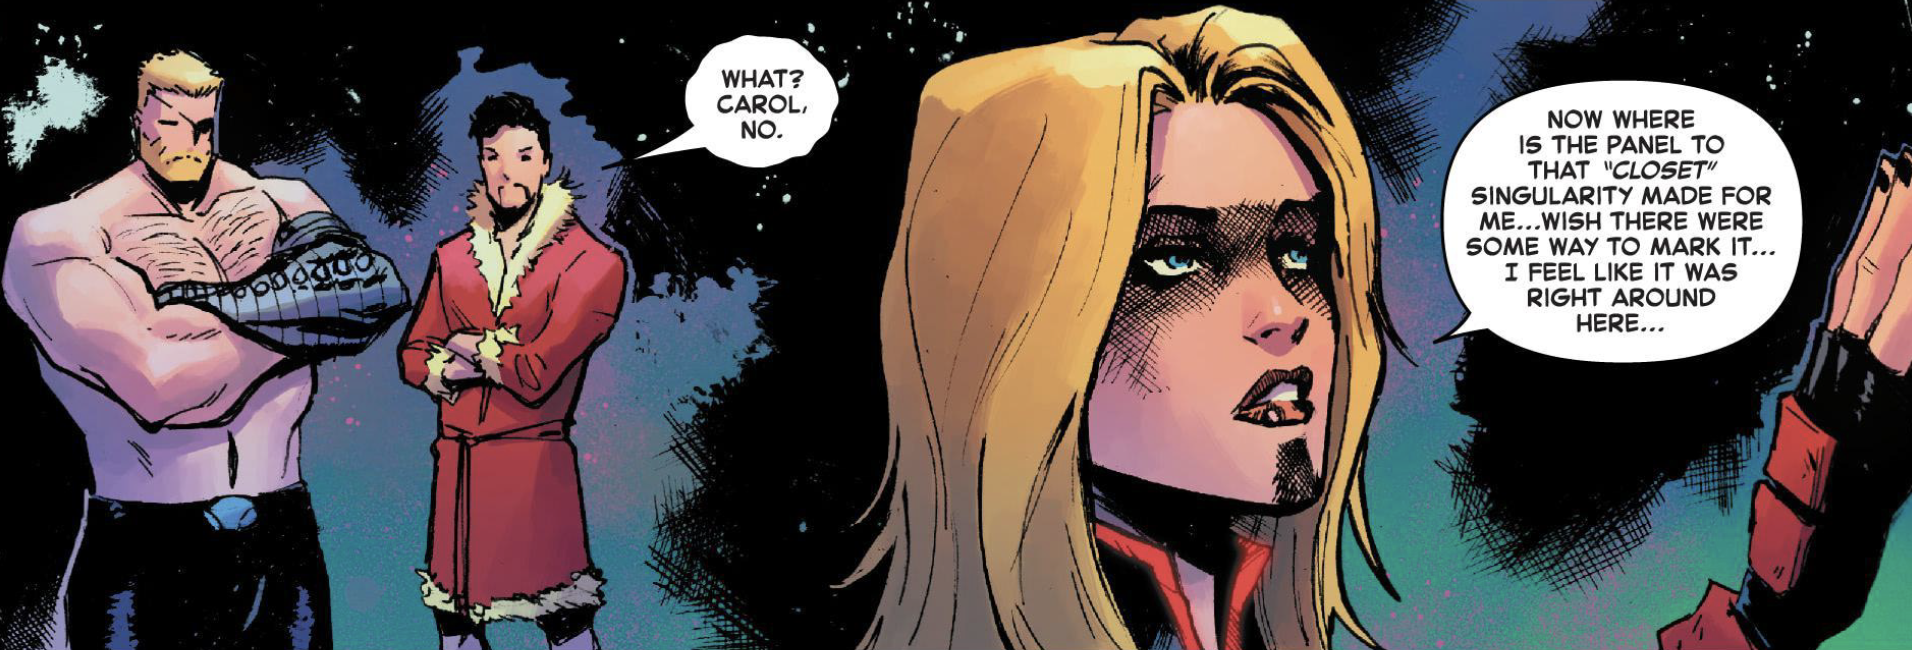 Page #4 of Captain Marvel #14.